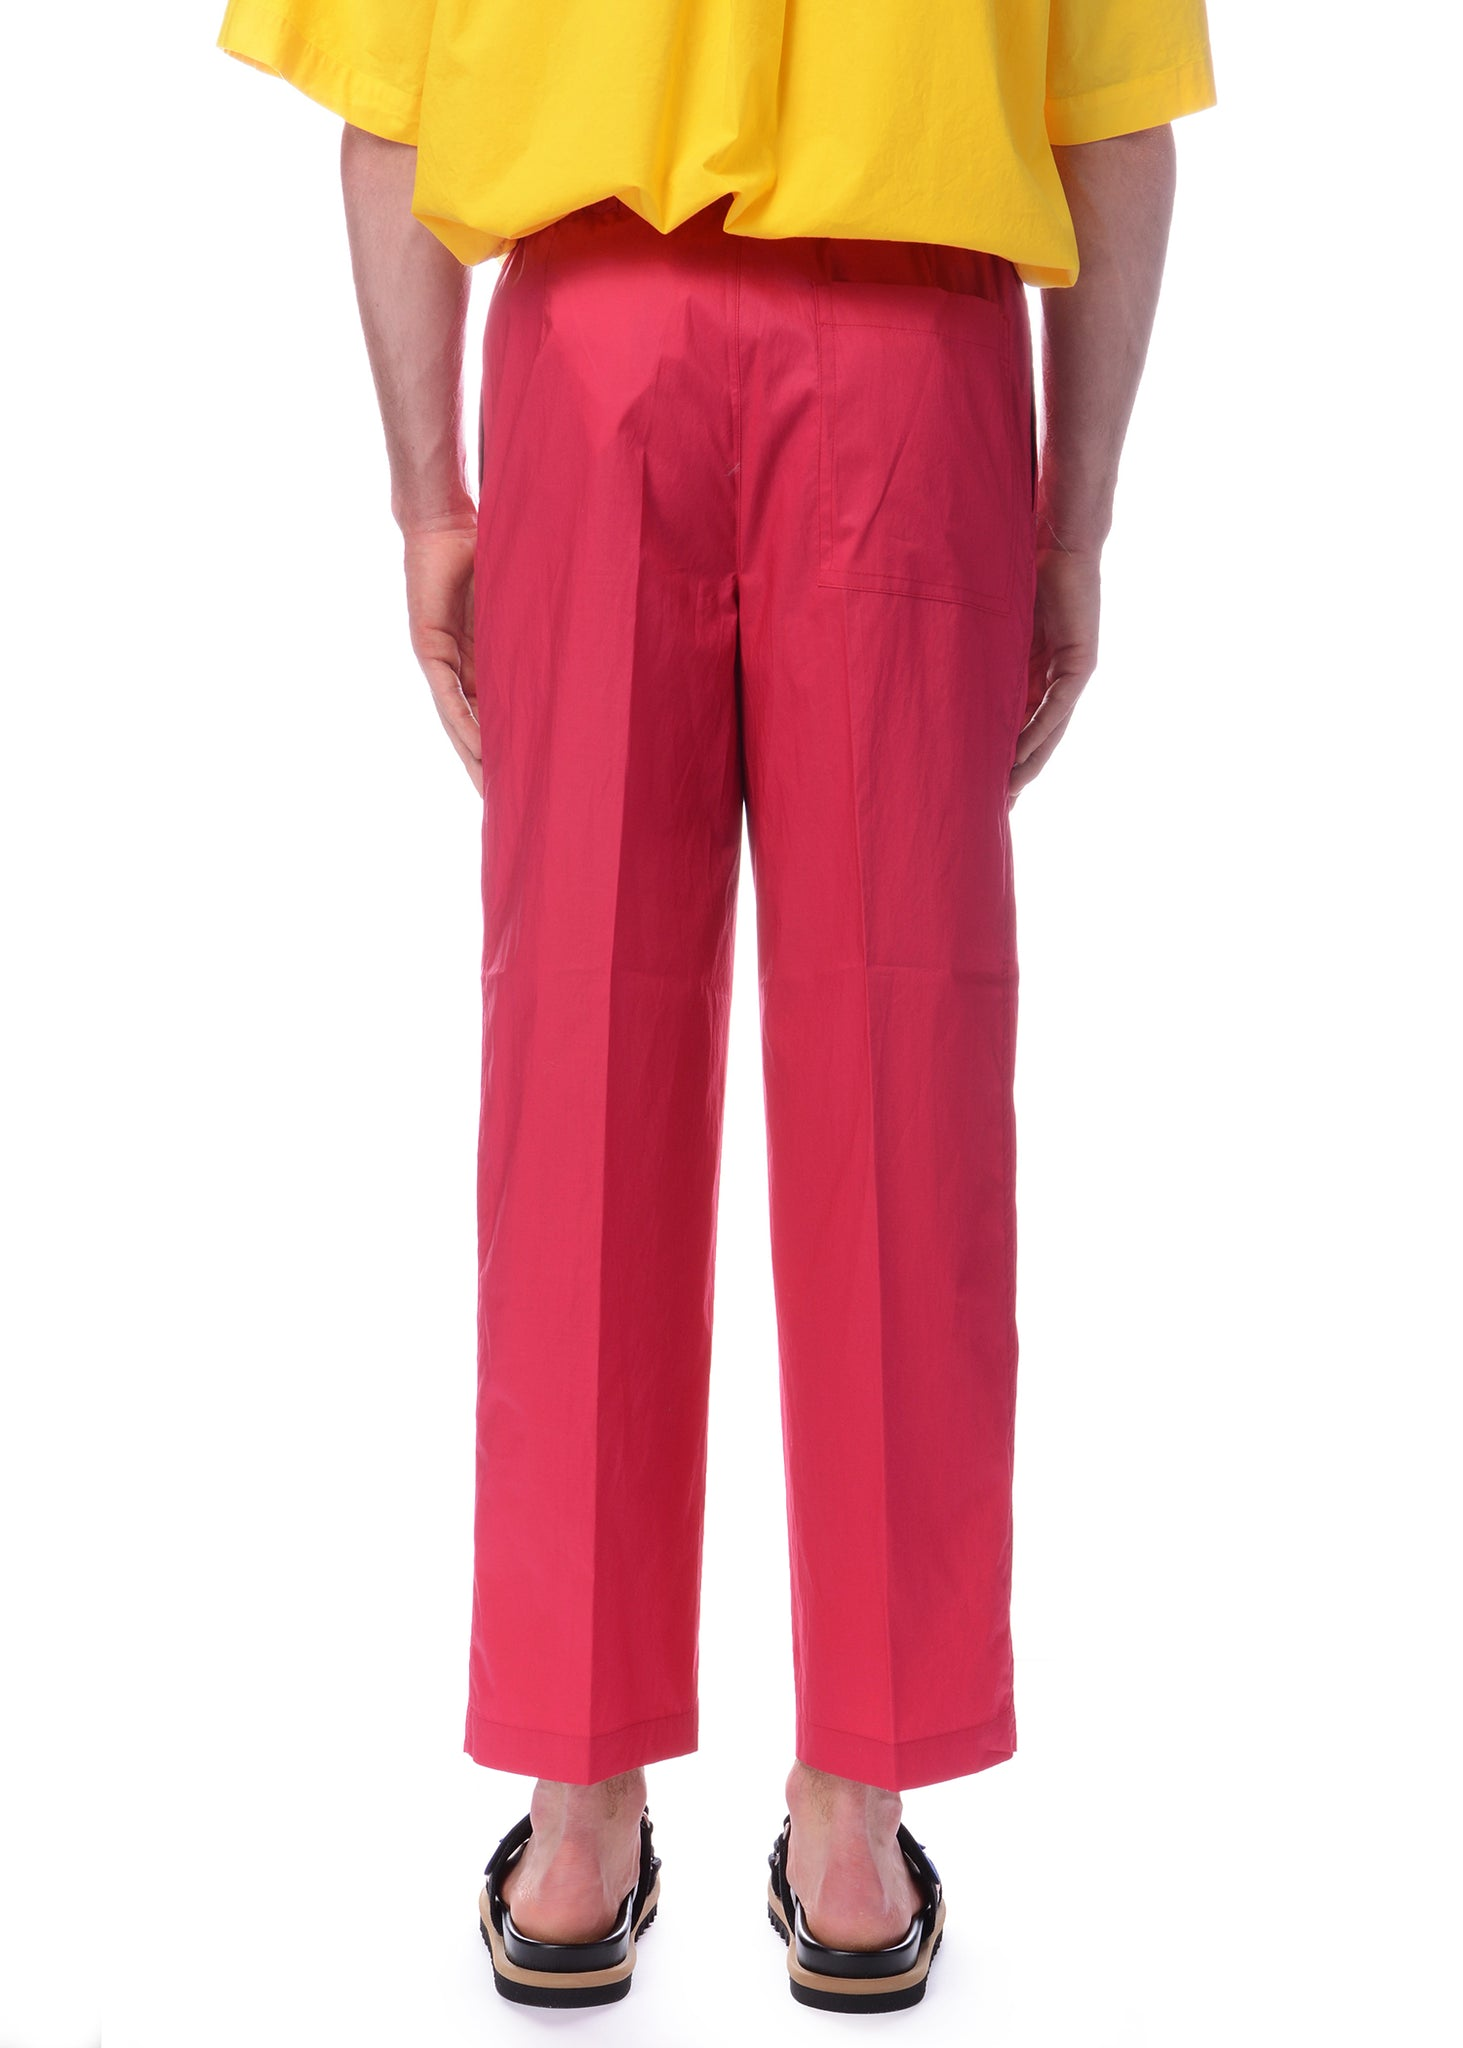 Pantalon en Coton Ample Rose|Pink Relaxed Fit Cotton Pants